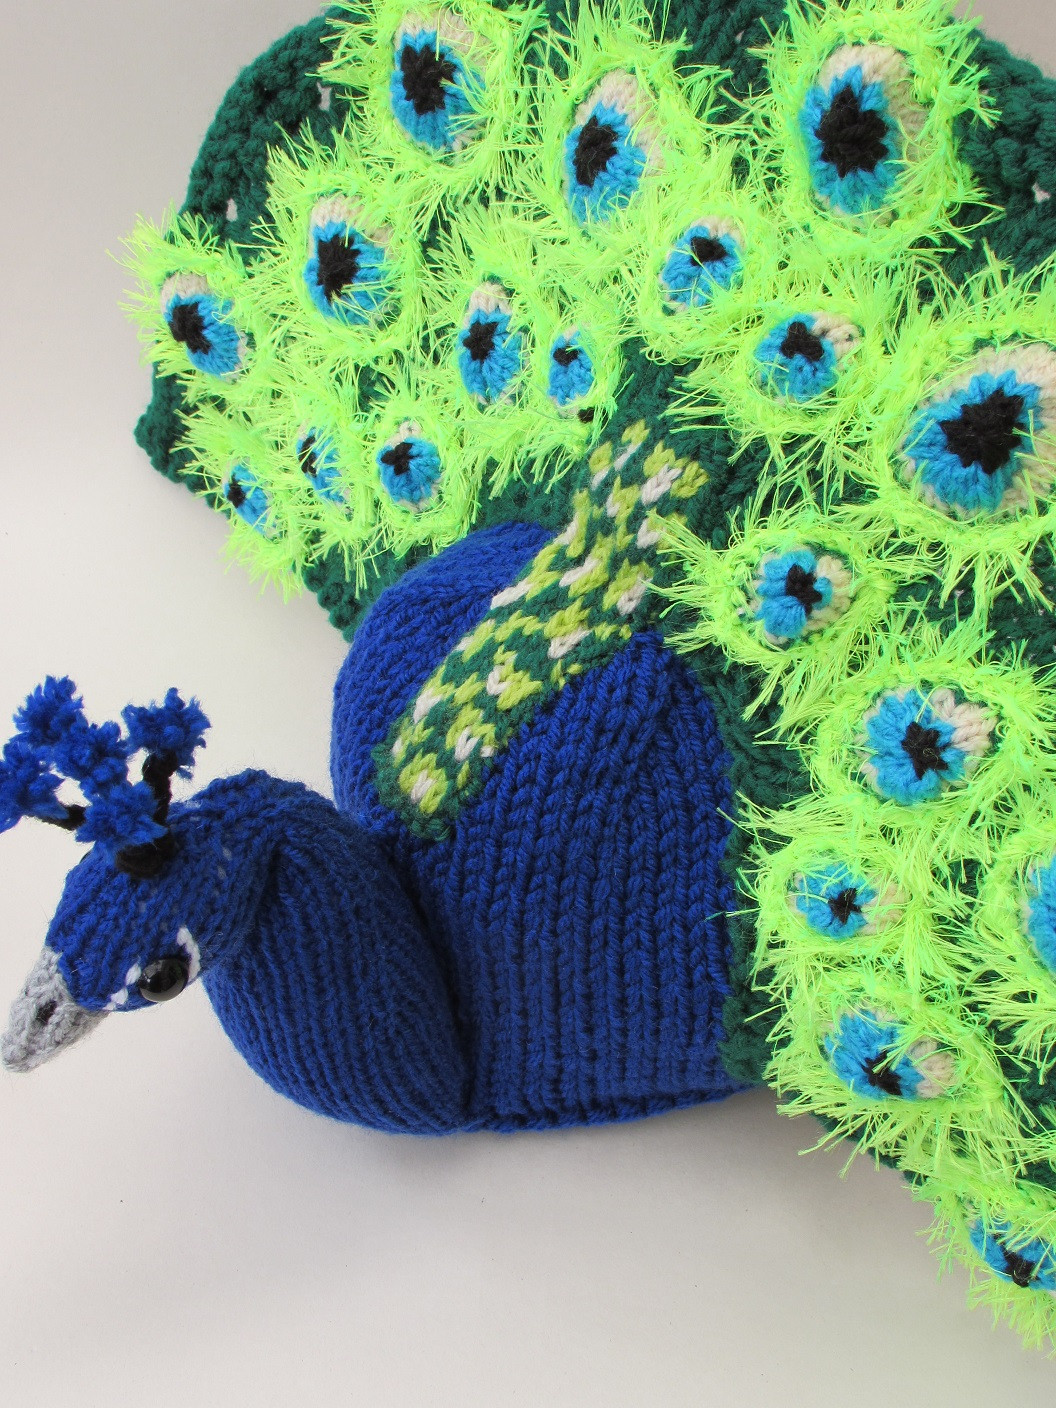 Tea Cosy Patterns Awesome Peacock Tea Cosy Knitting Pattern Of Innovative 44 Models Tea Cosy Patterns